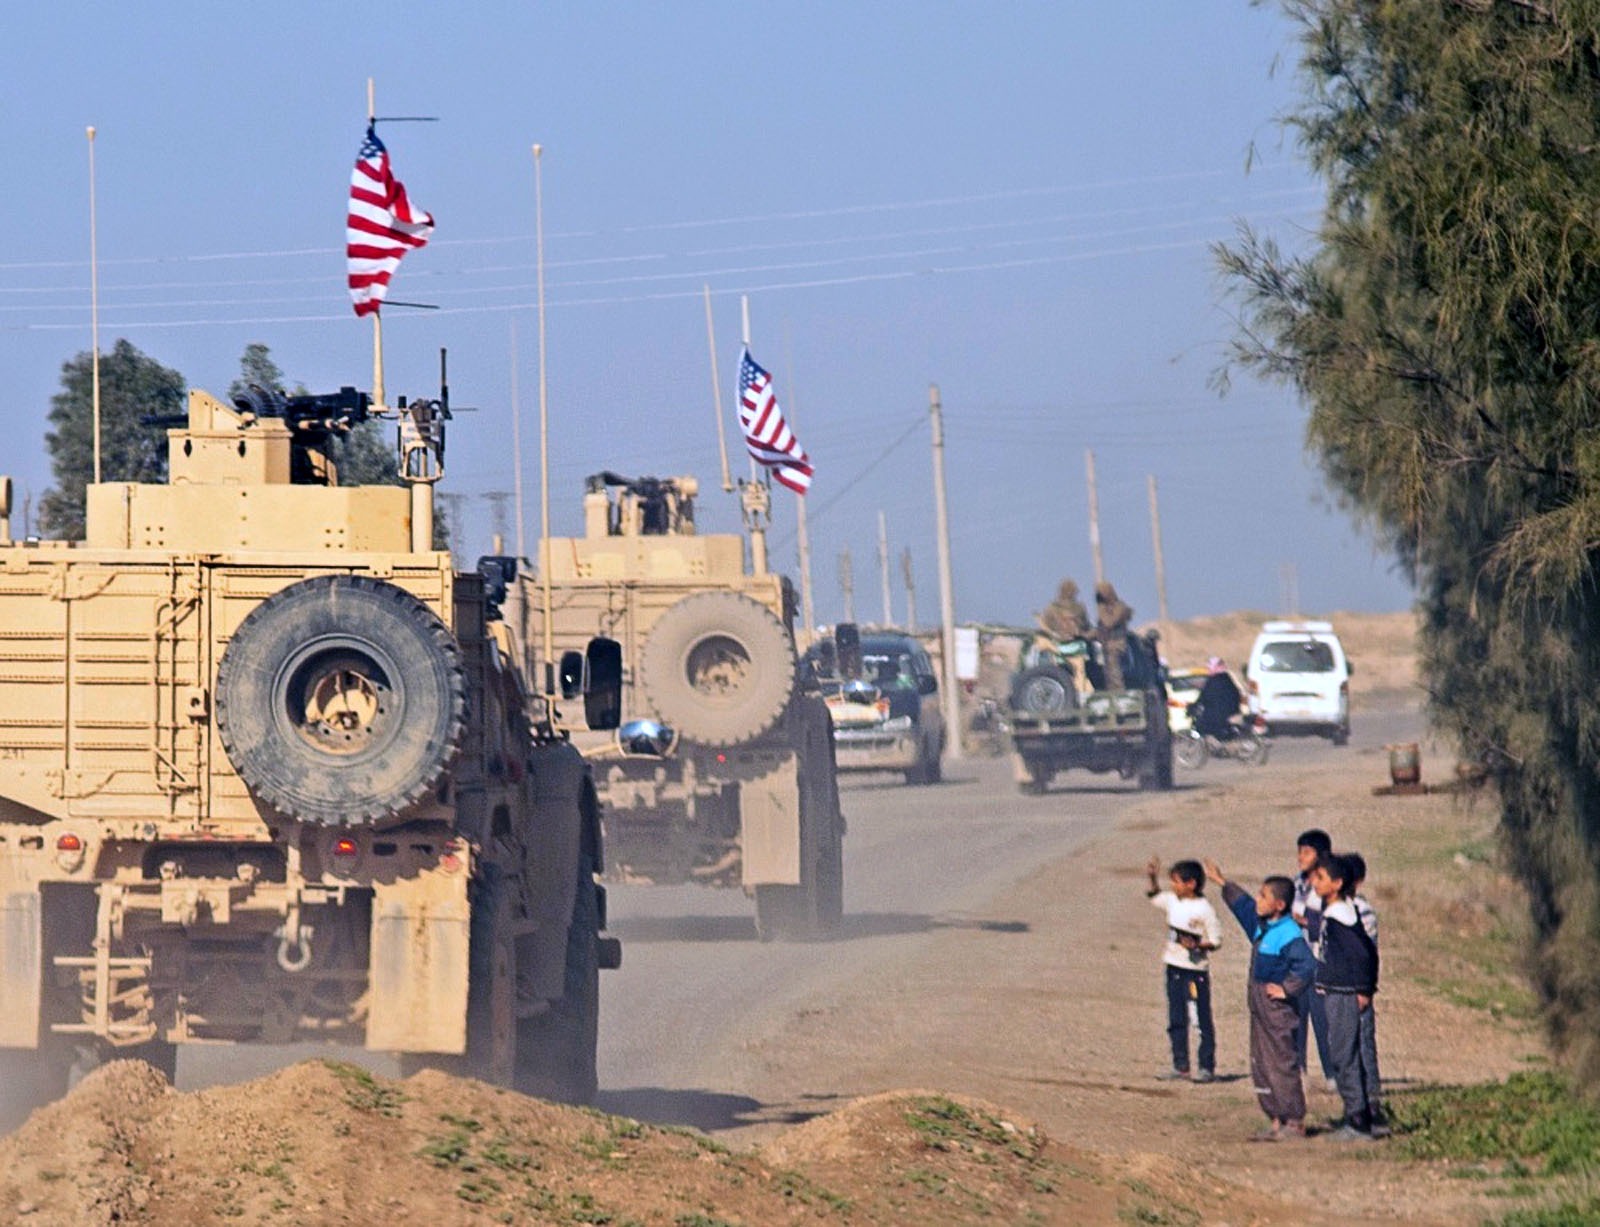 U.S. soldiers in Syria. // Creative Commons